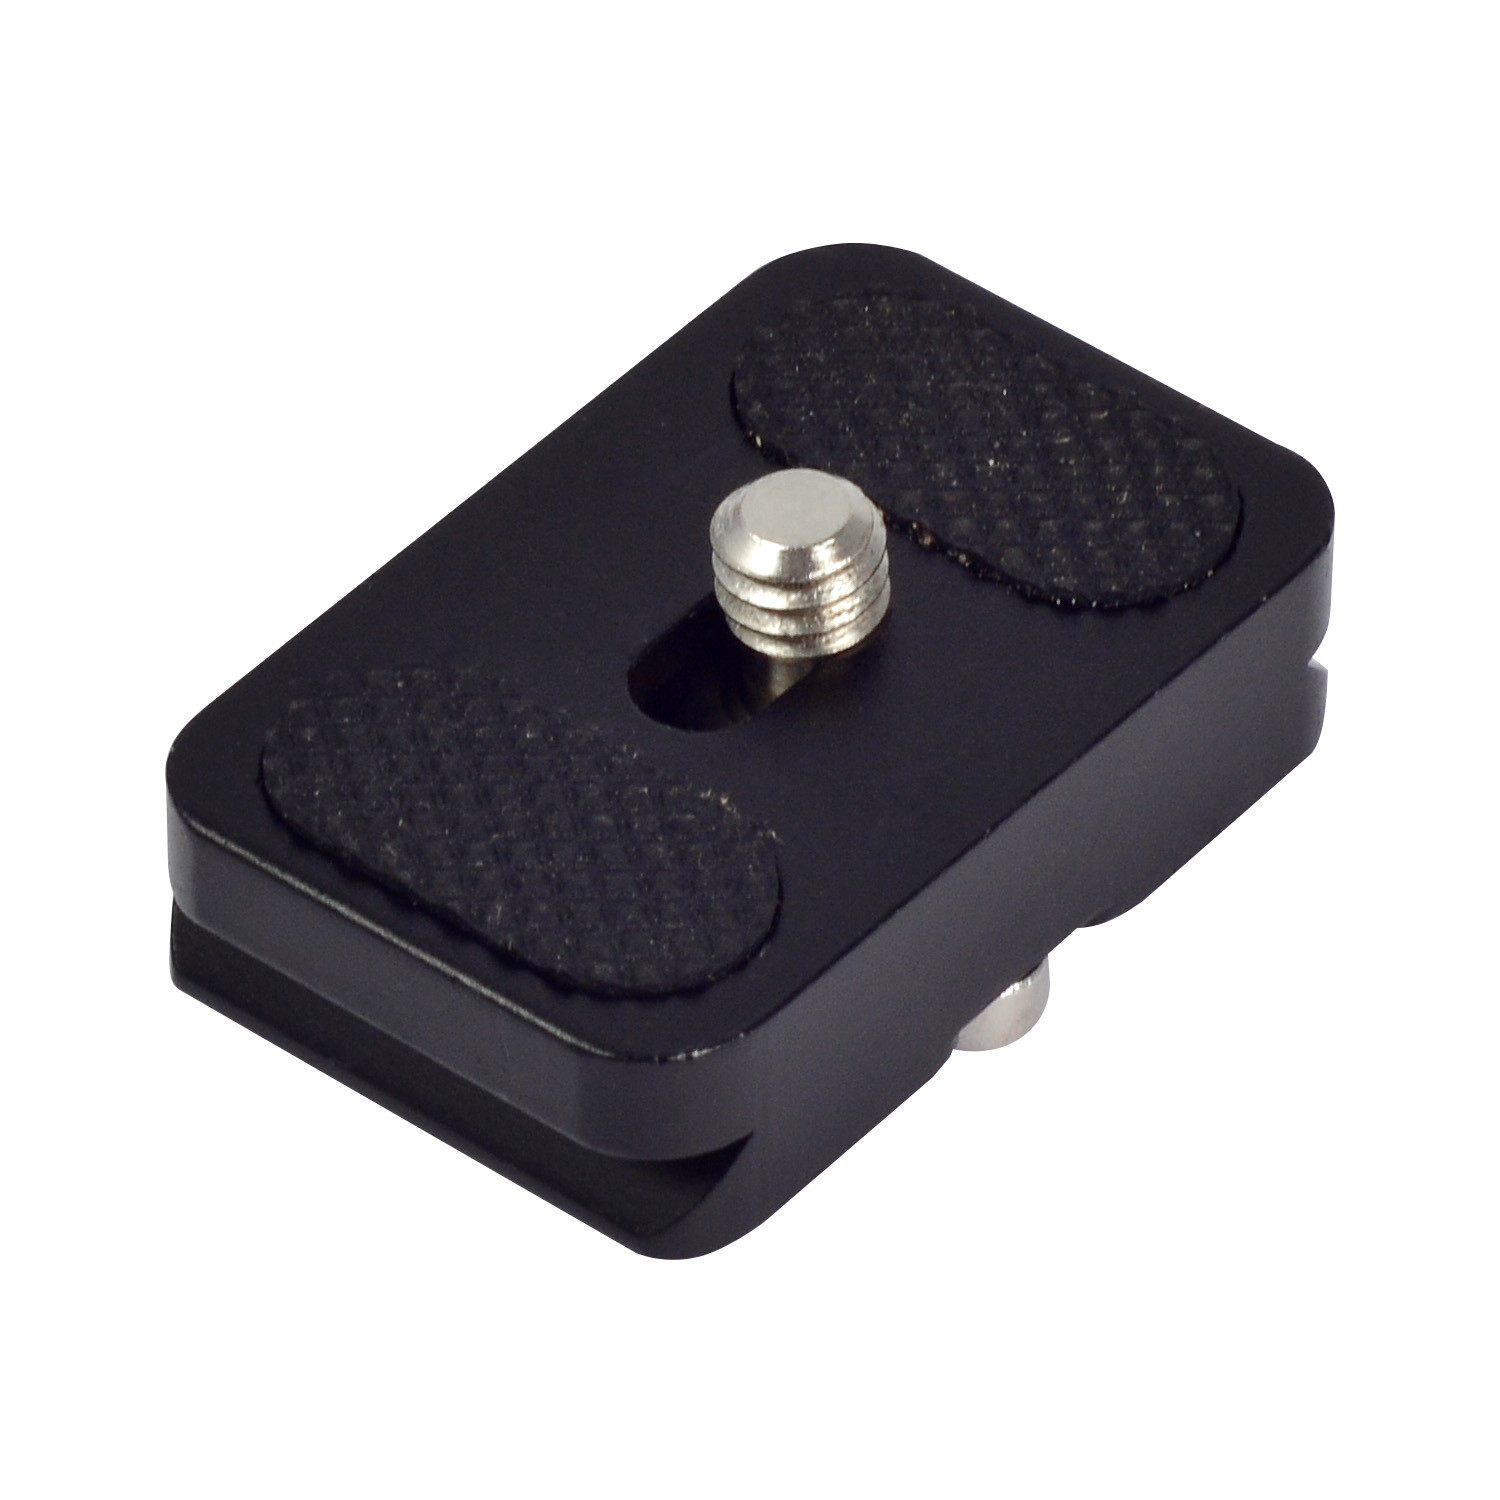 MENGS® PU-25 1/4'' Screw Quick Release Plate With Aluminium Compatible With All Arca-Swiss Standard, Such As RRS / KIRK / Wimberley / MARKINS Etc Camera Clam or Ball Heads